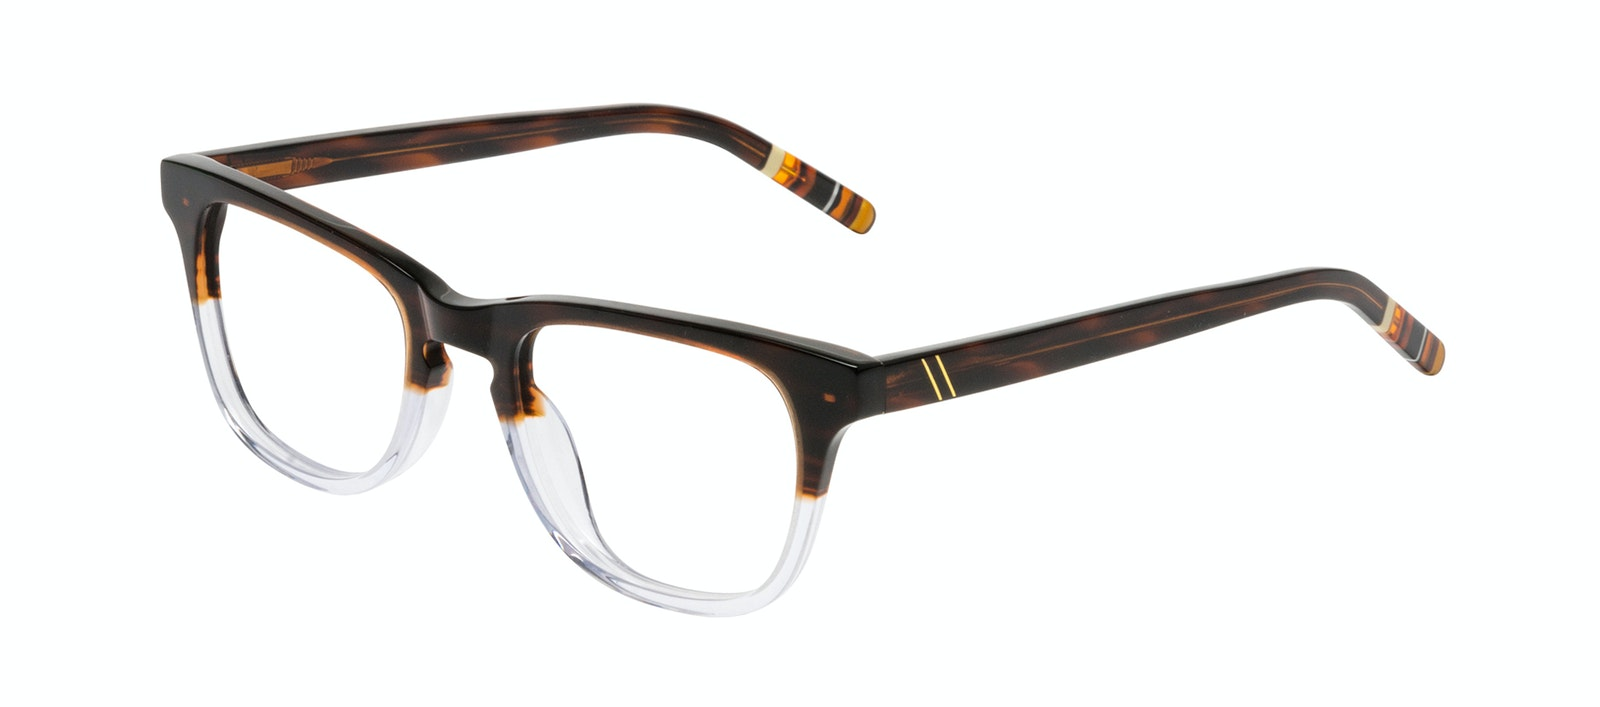 Affordable Fashion Glasses Rectangle Eyeglasses Men Trust Bark Tilt